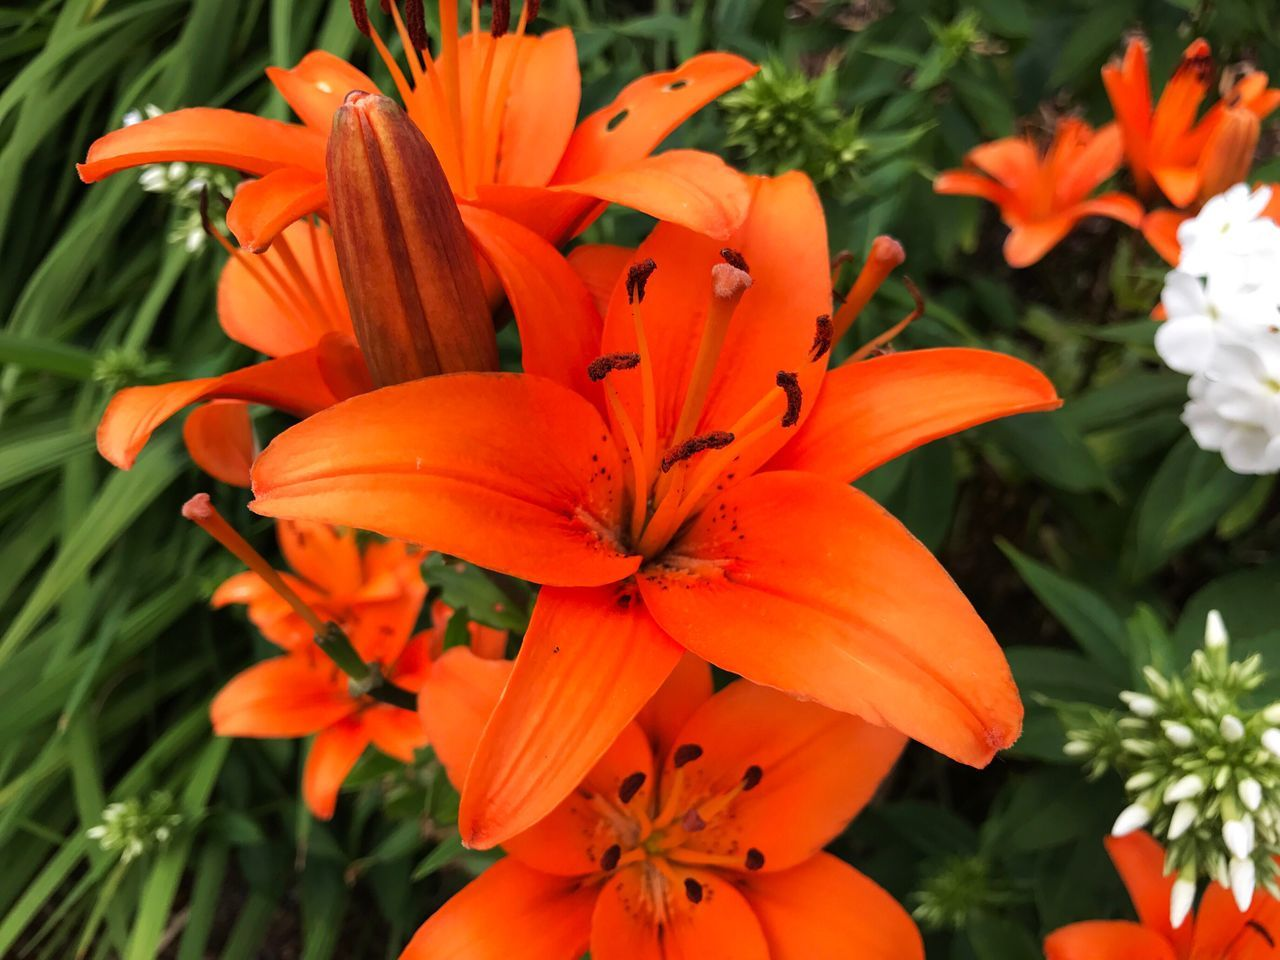 flower, orange color, petal, beauty in nature, growth, flower head, freshness, nature, fragility, plant, blooming, day lily, outdoors, no people, day, close-up